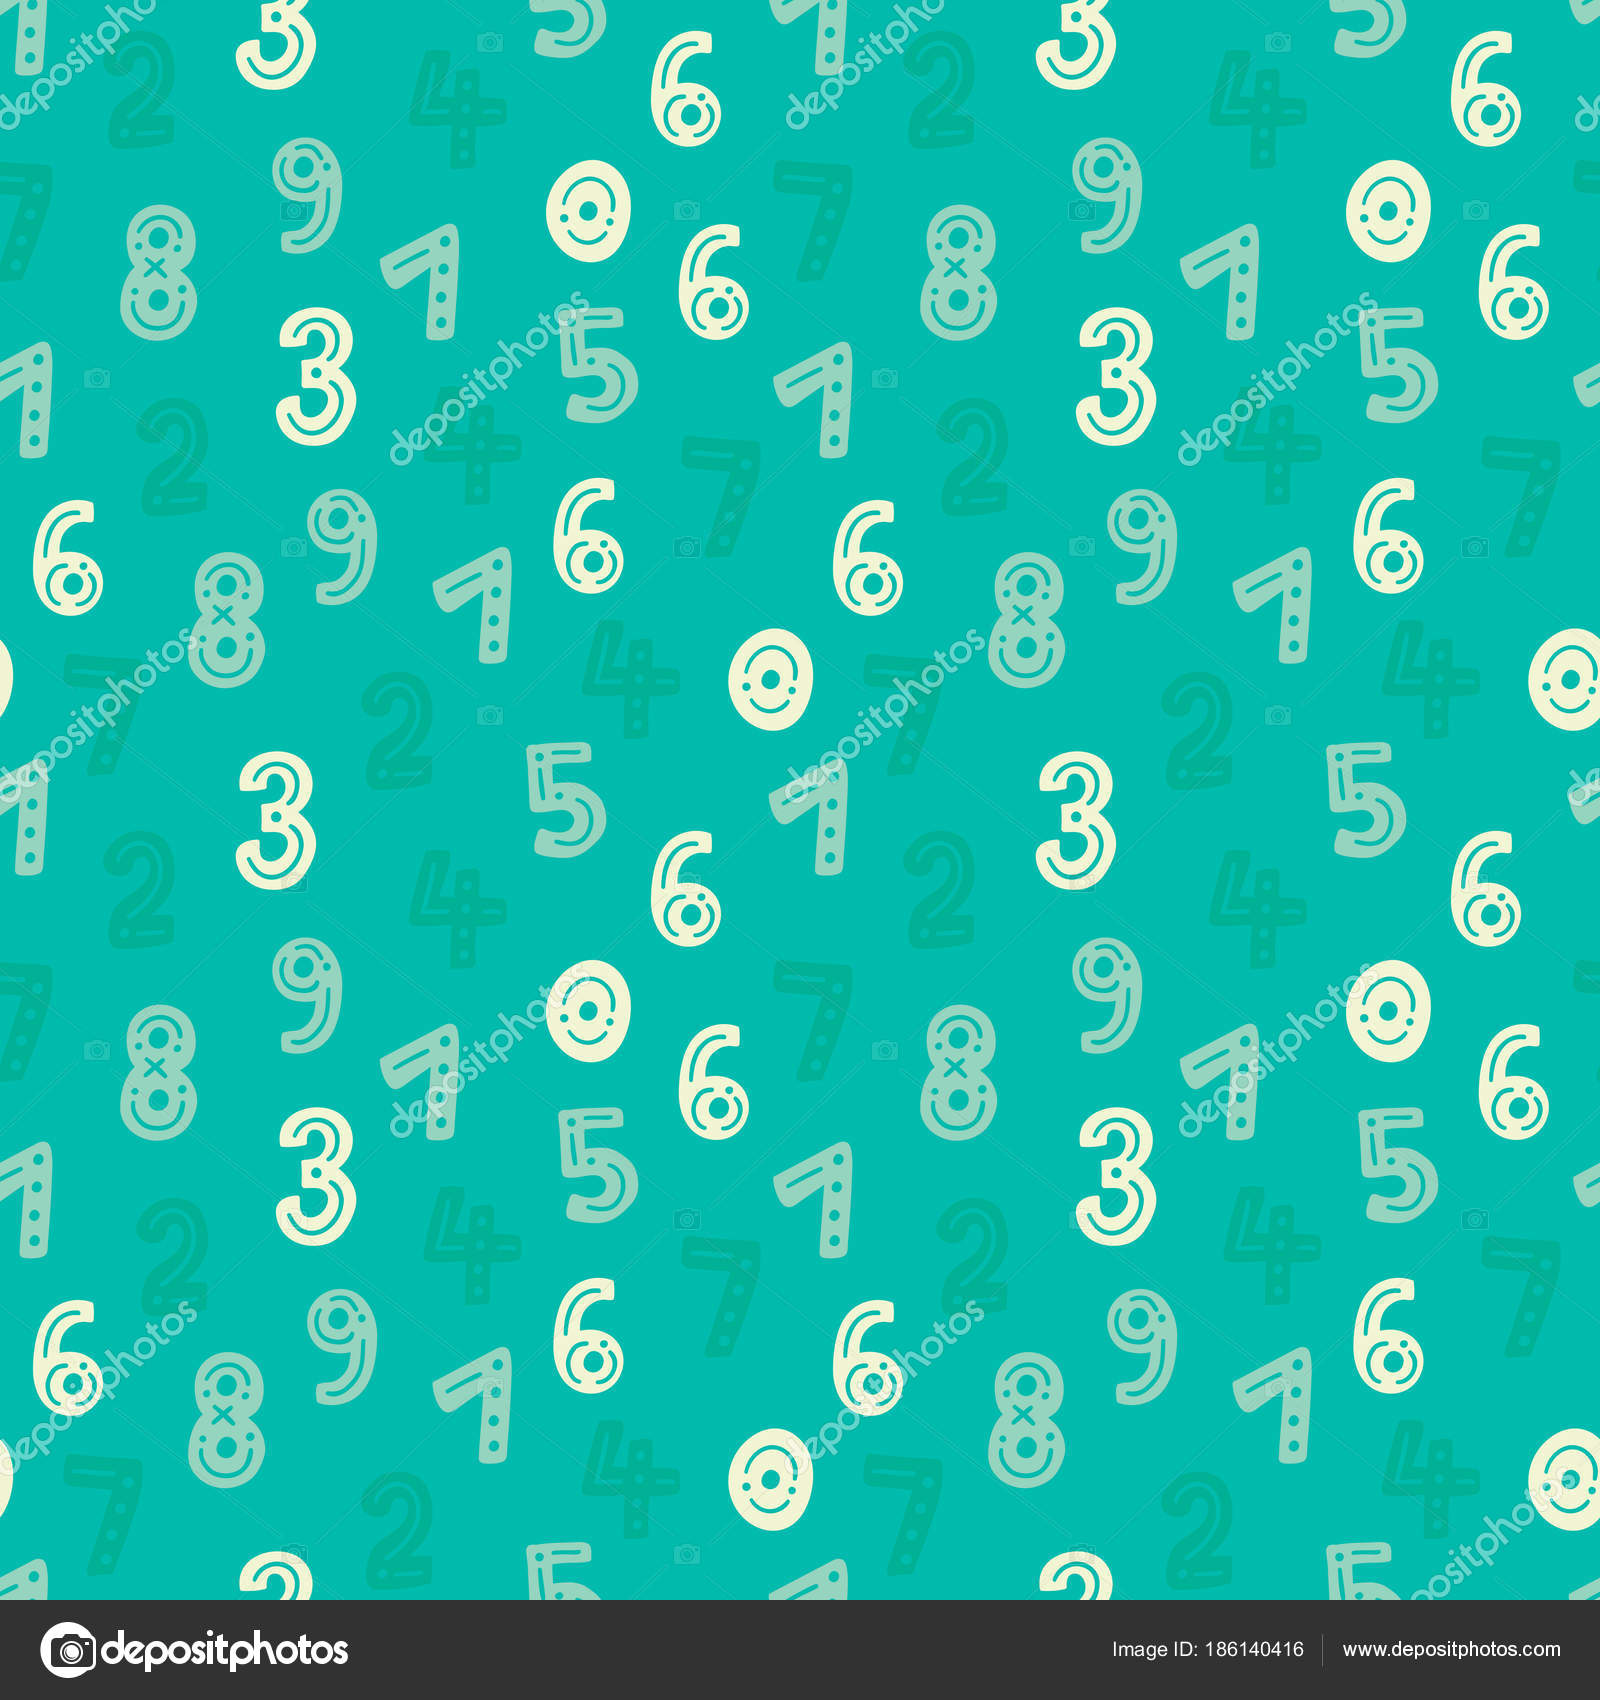 Cute Hand Drawn Numbers Seamless Vector Pattern Green Blue ...